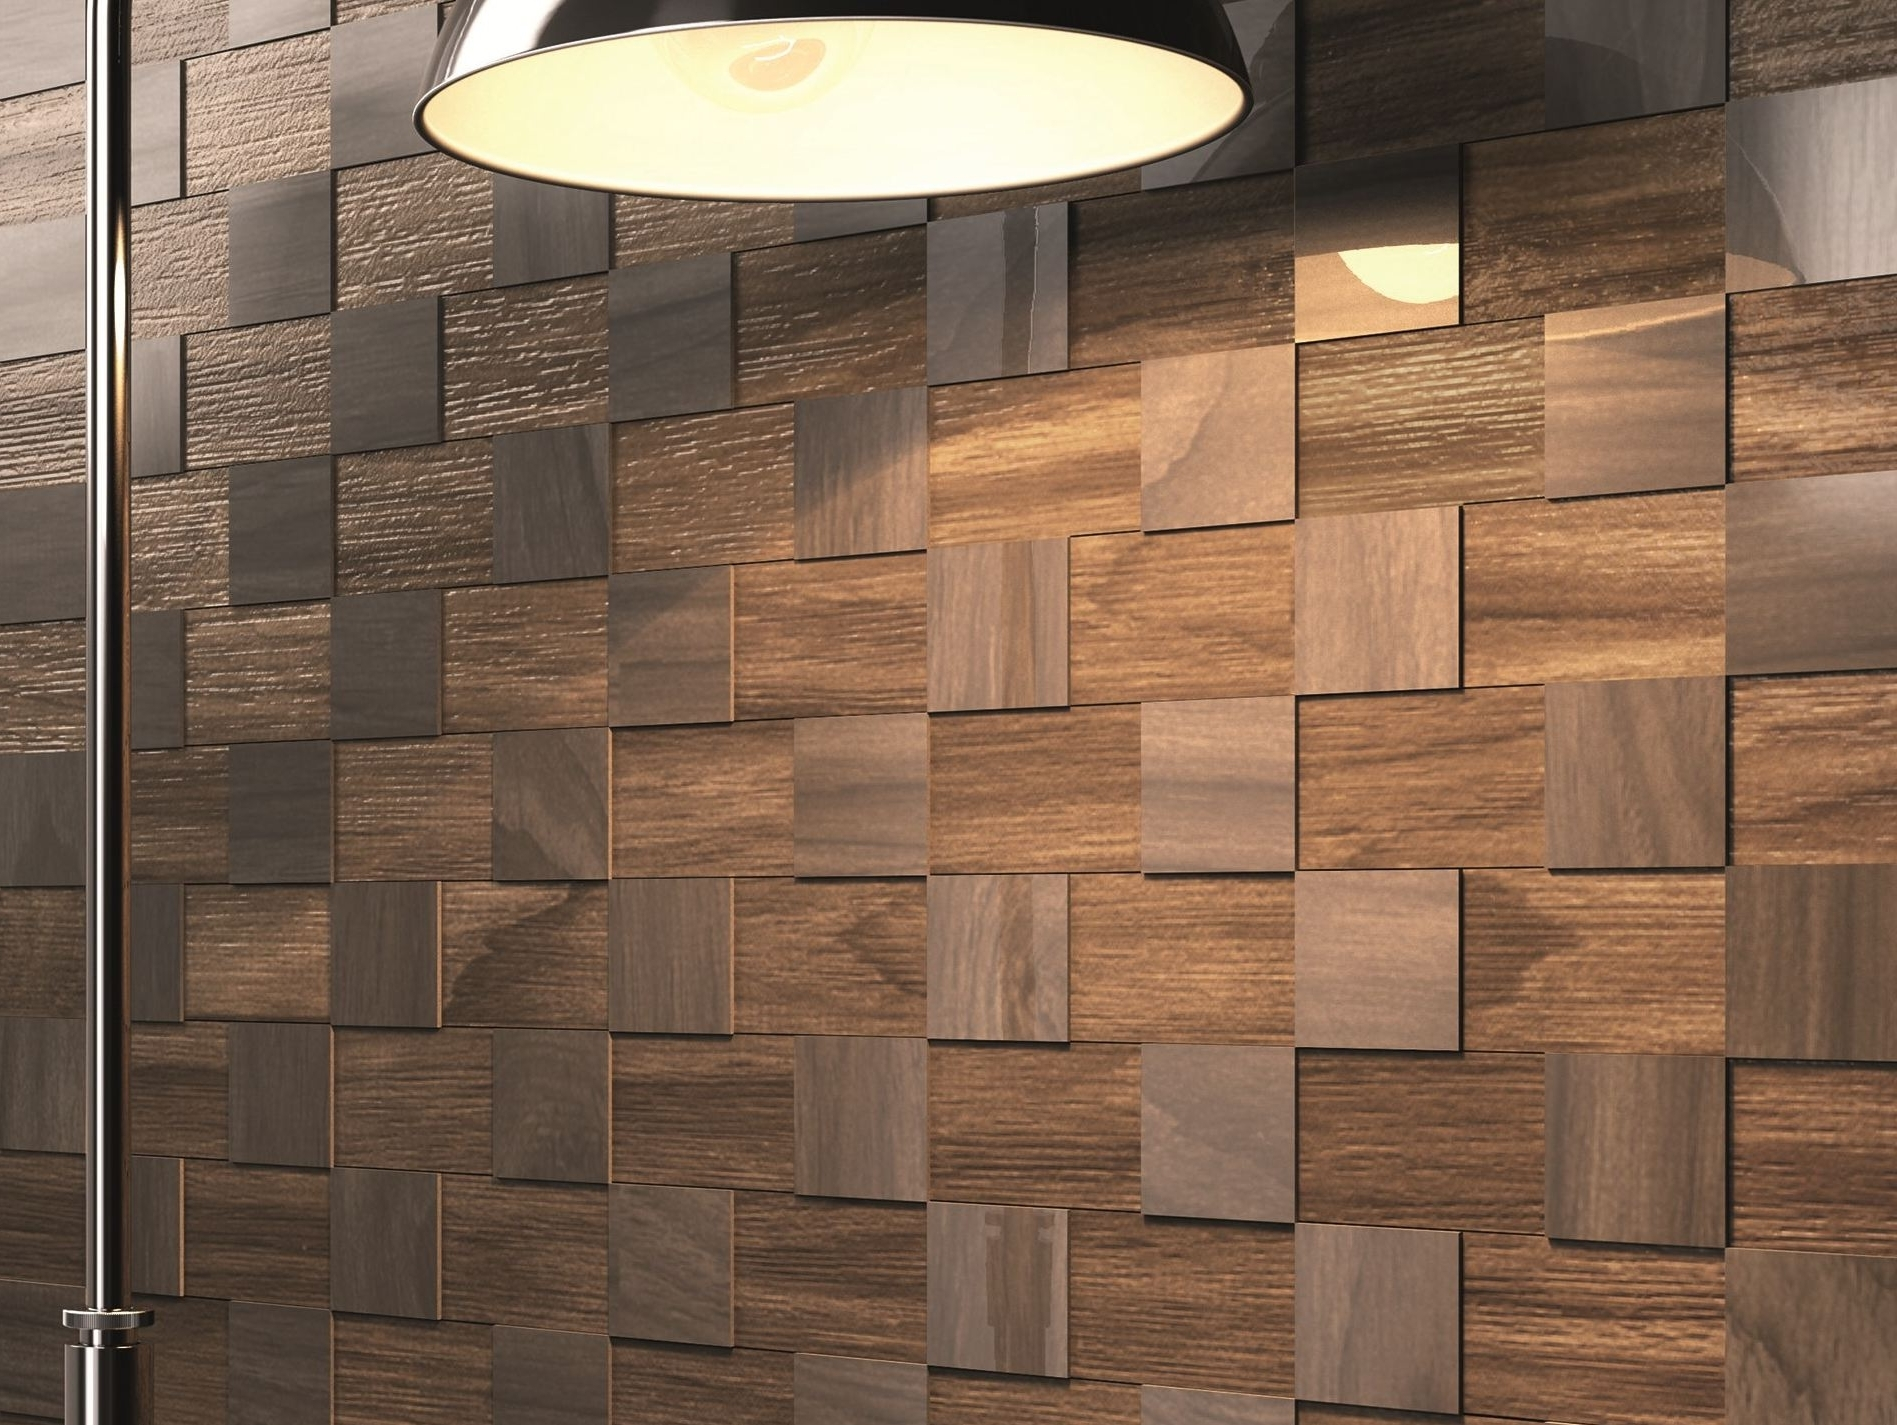 Most Recent 3D Wall Art Decorating Wallpaper Painting Contemporary Dark Wood In Wood 3D Wall Art (View 6 of 15)